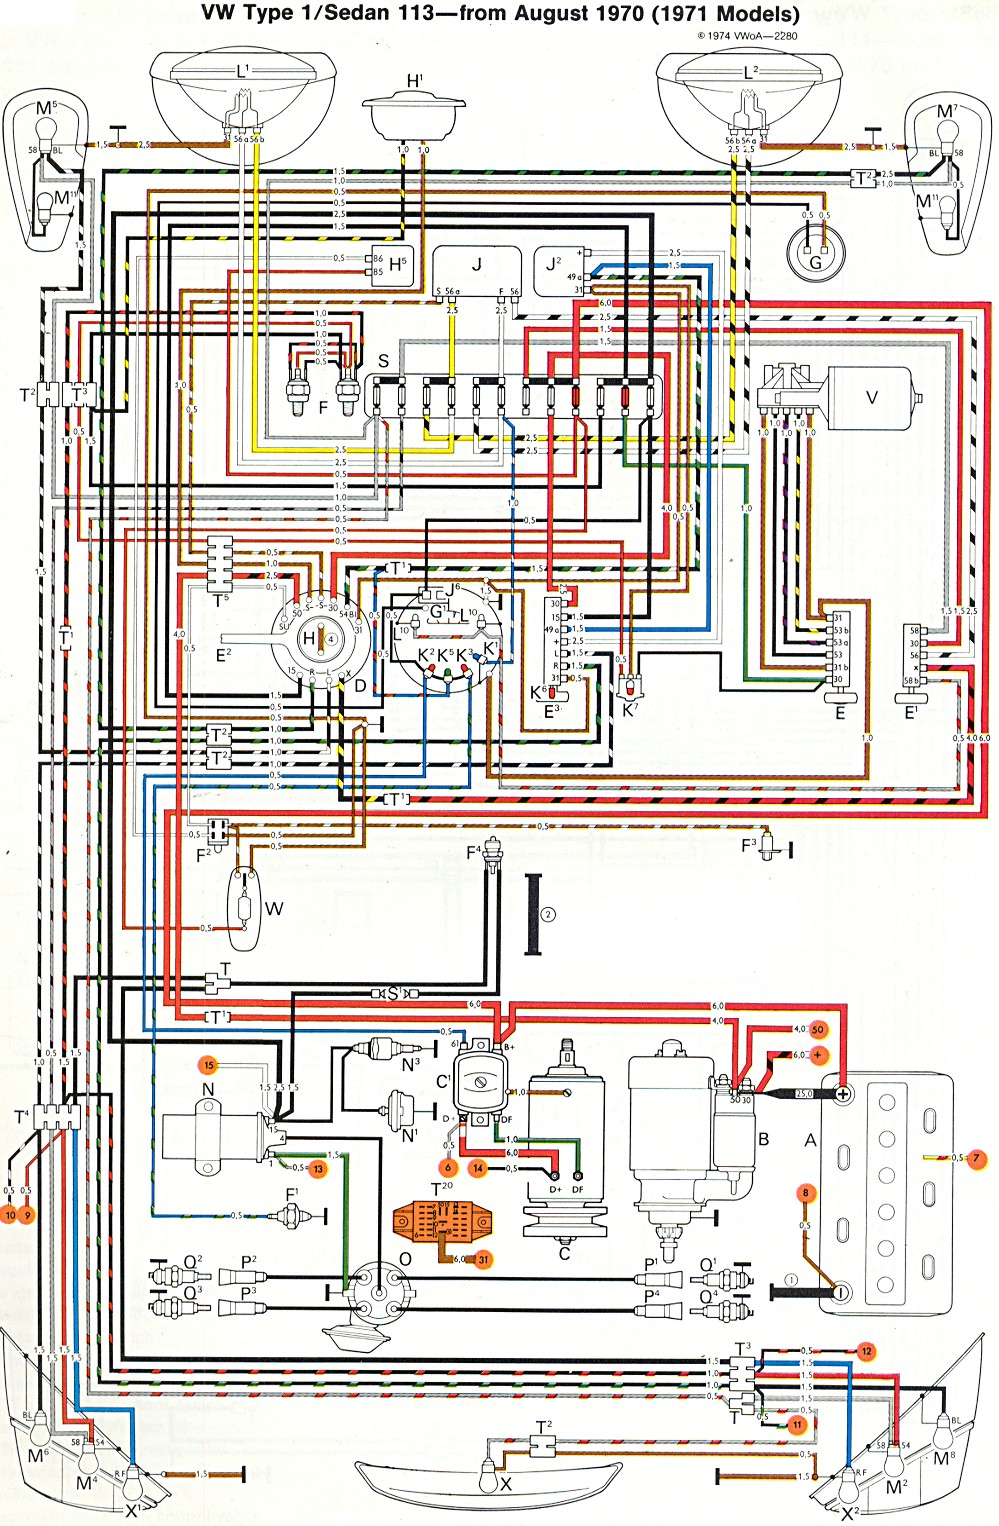 vw autostick engine wiring diagram wiring diagram blog rh 18 fuerstliche weine de VW Bug Engine Diagram VW Bus Engine Diagram